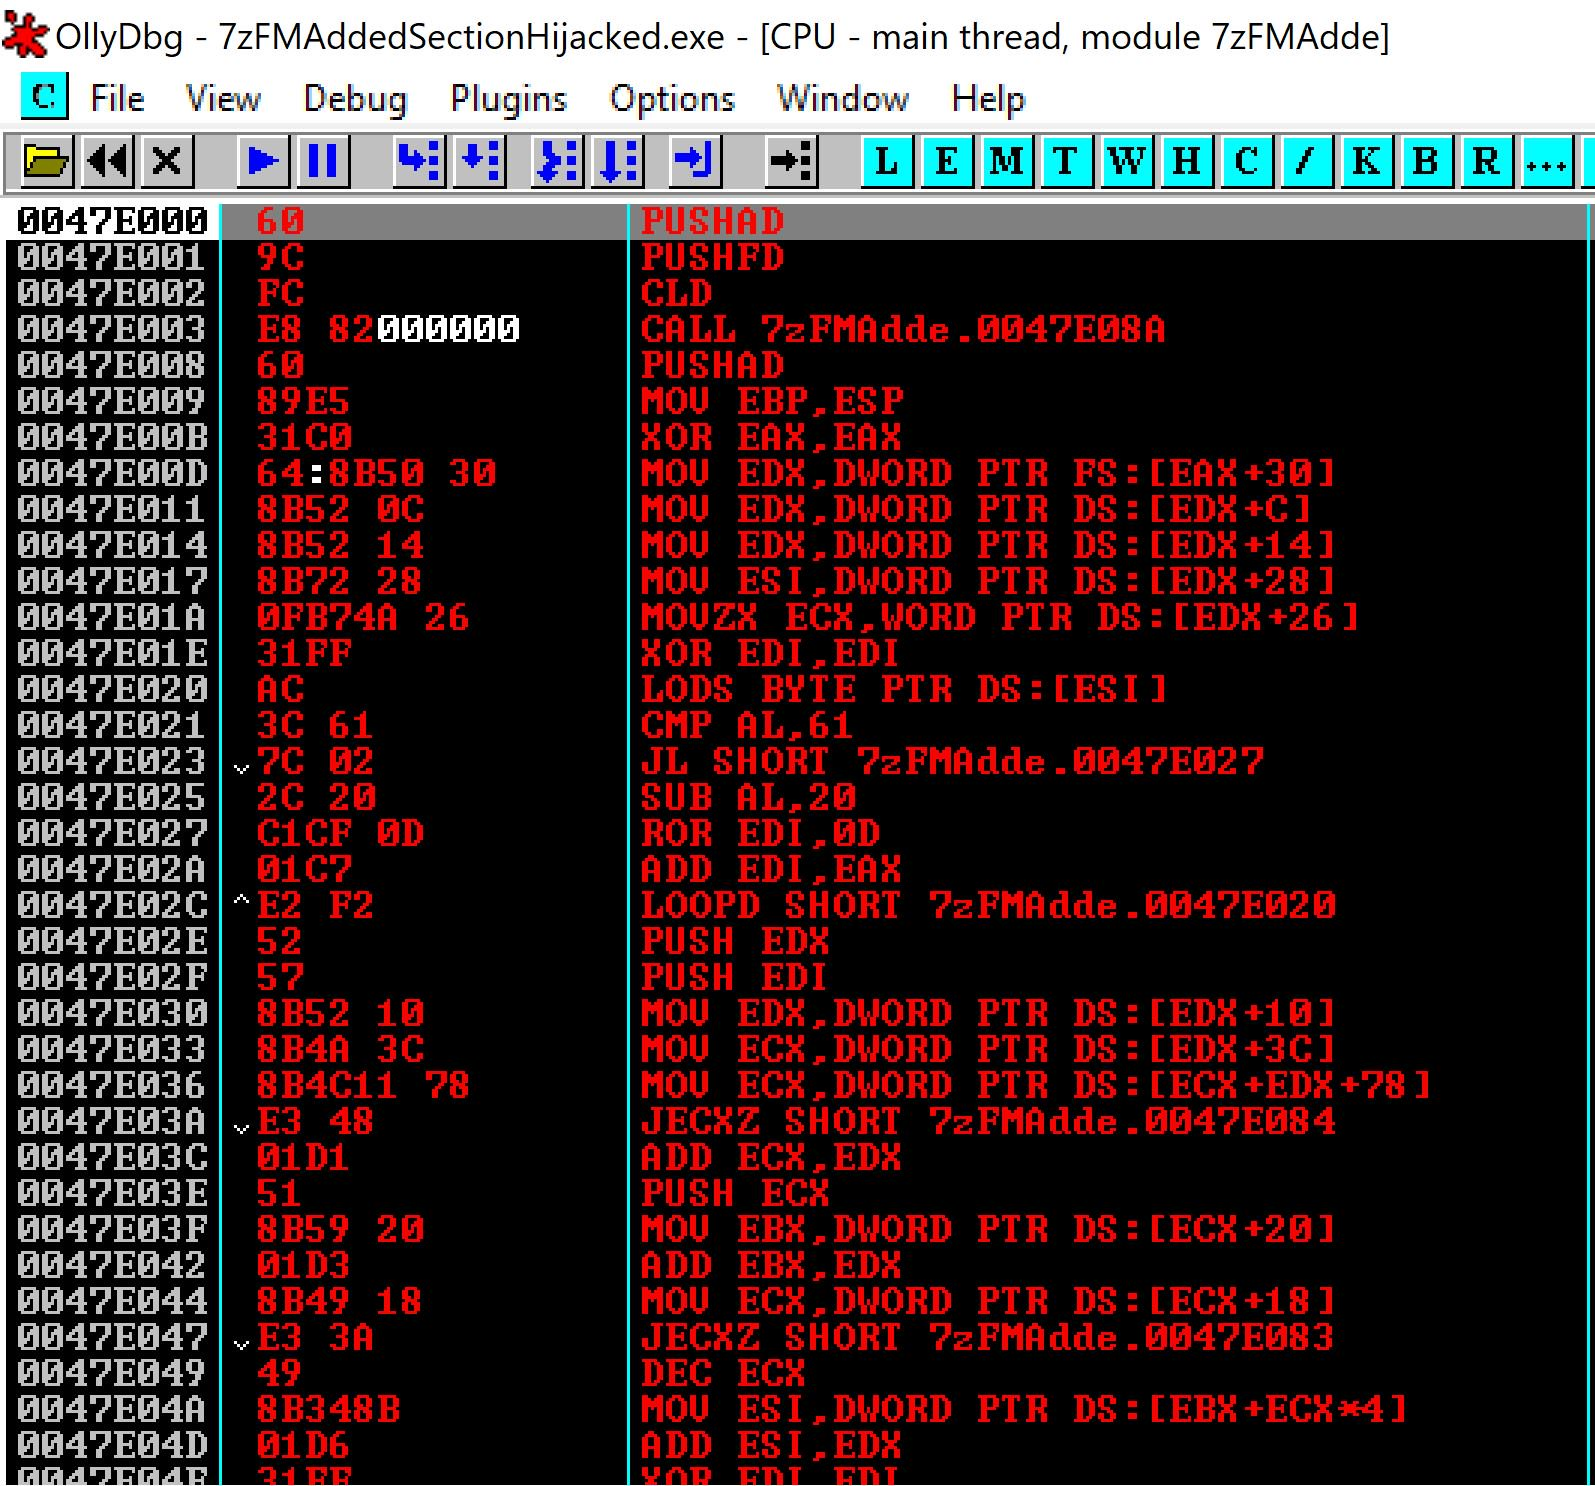 Backdoor PE to fully undetectable binary